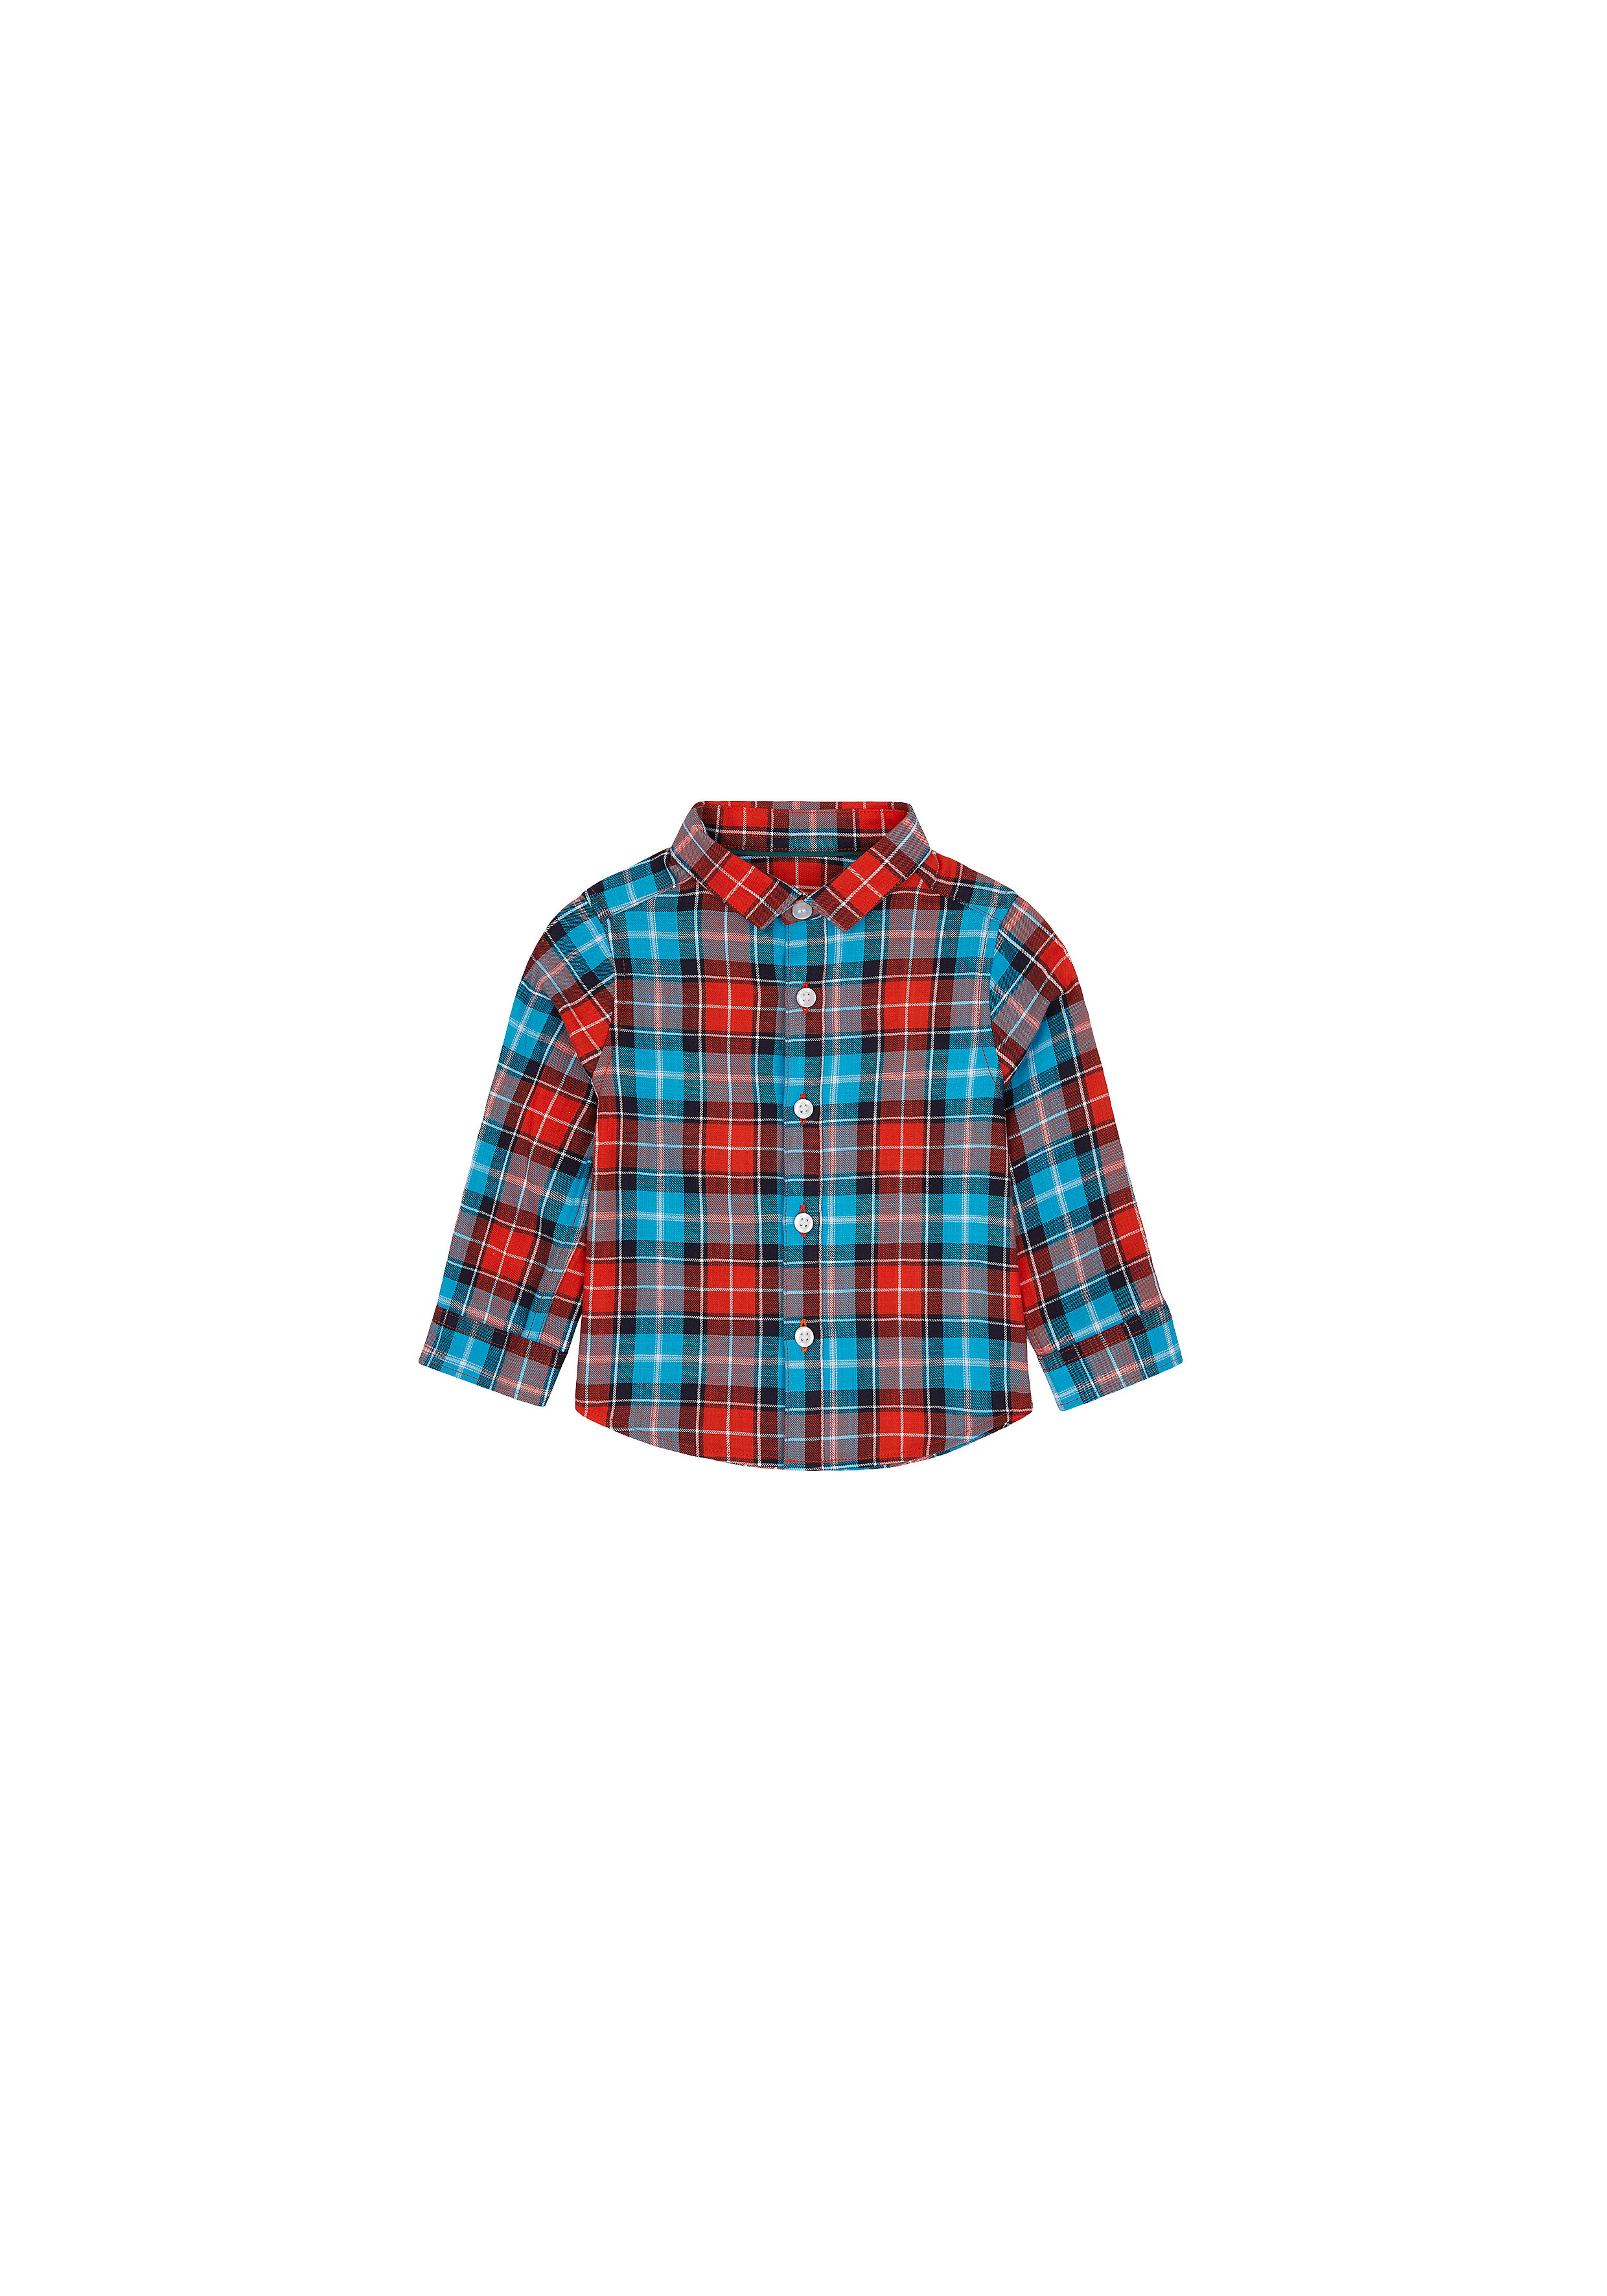 Mothercare | Boys Full Sleeves Check Shirt - Blue Red